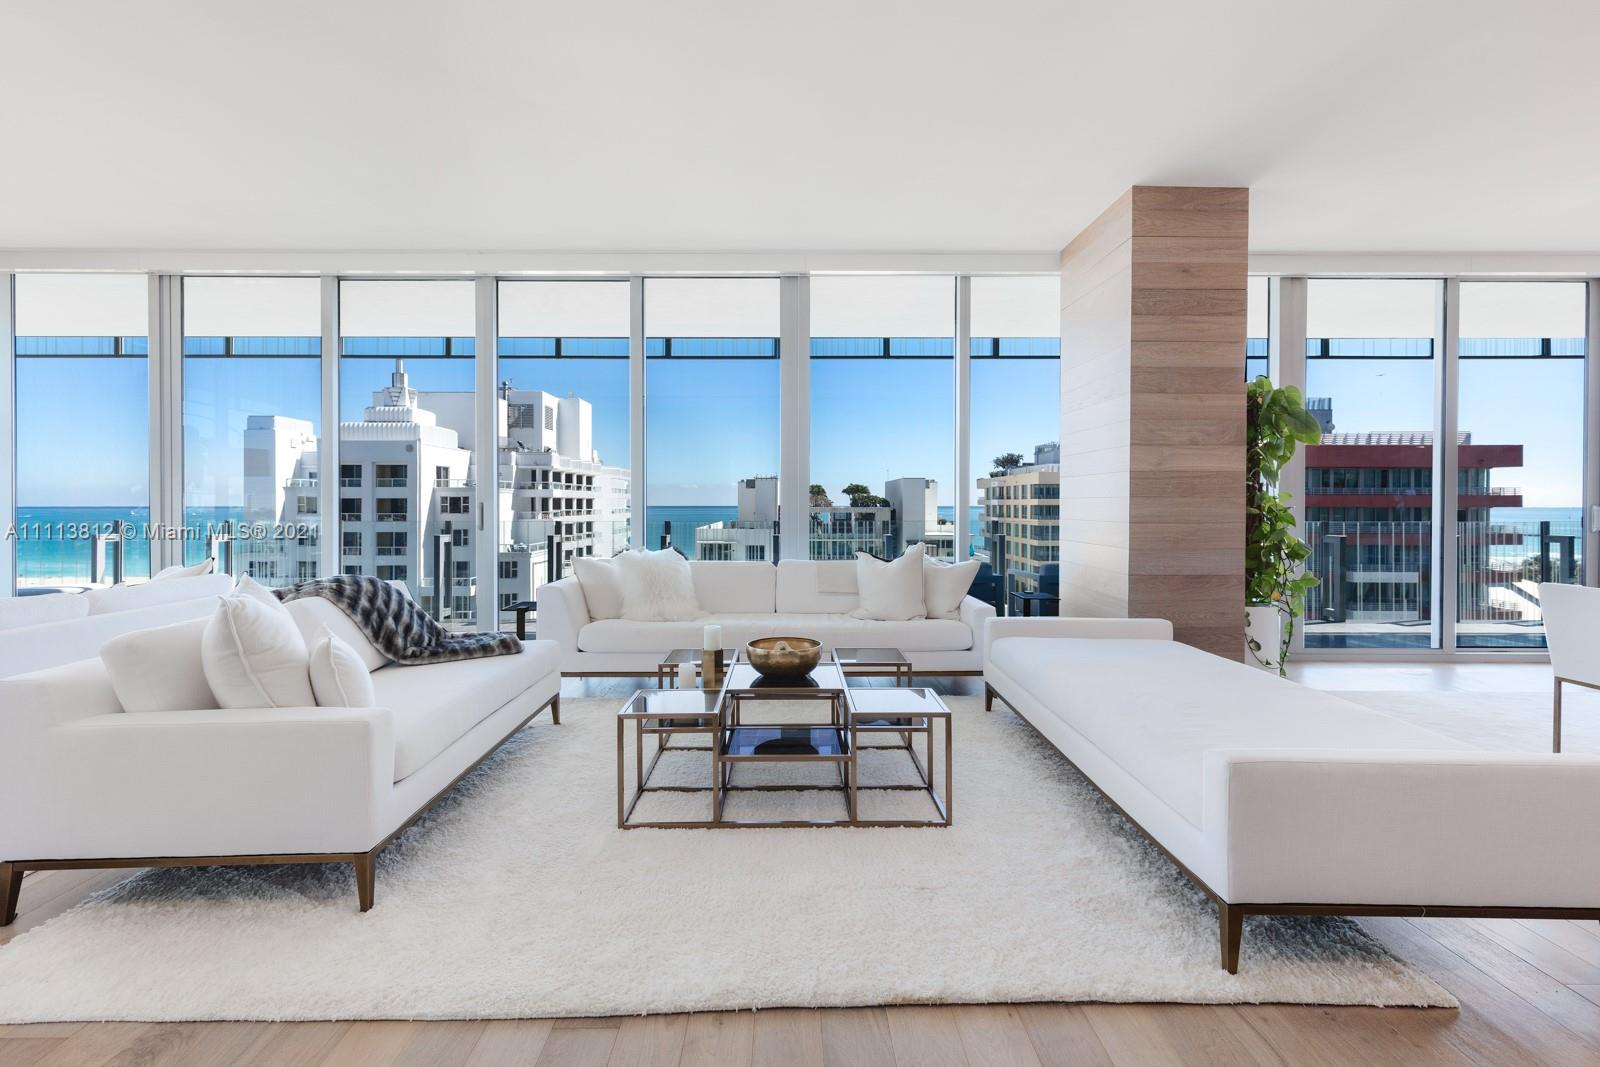 Spanning the entire 9th floor, this expansive residence is the perfect place to call home. Located on the famous Ocean Drive in the heart of the South of Fifth neighborhood boasting 360 degree views through floor to ceiling glass windows, 10 FT ceilings, a Calcutta marble kitchen with Gaggenau appliances and wood flooring throughout. Designed by Architect Rene Gonzalez, engaging our senses with inspiration from the surrounding landscape, designed with an all glass exterior to combine interiors with exterior spaces. Residents of GLASS are offered beach service, a beautiful pool area with Jacuzzi, boutique gym and a full time estate manager.